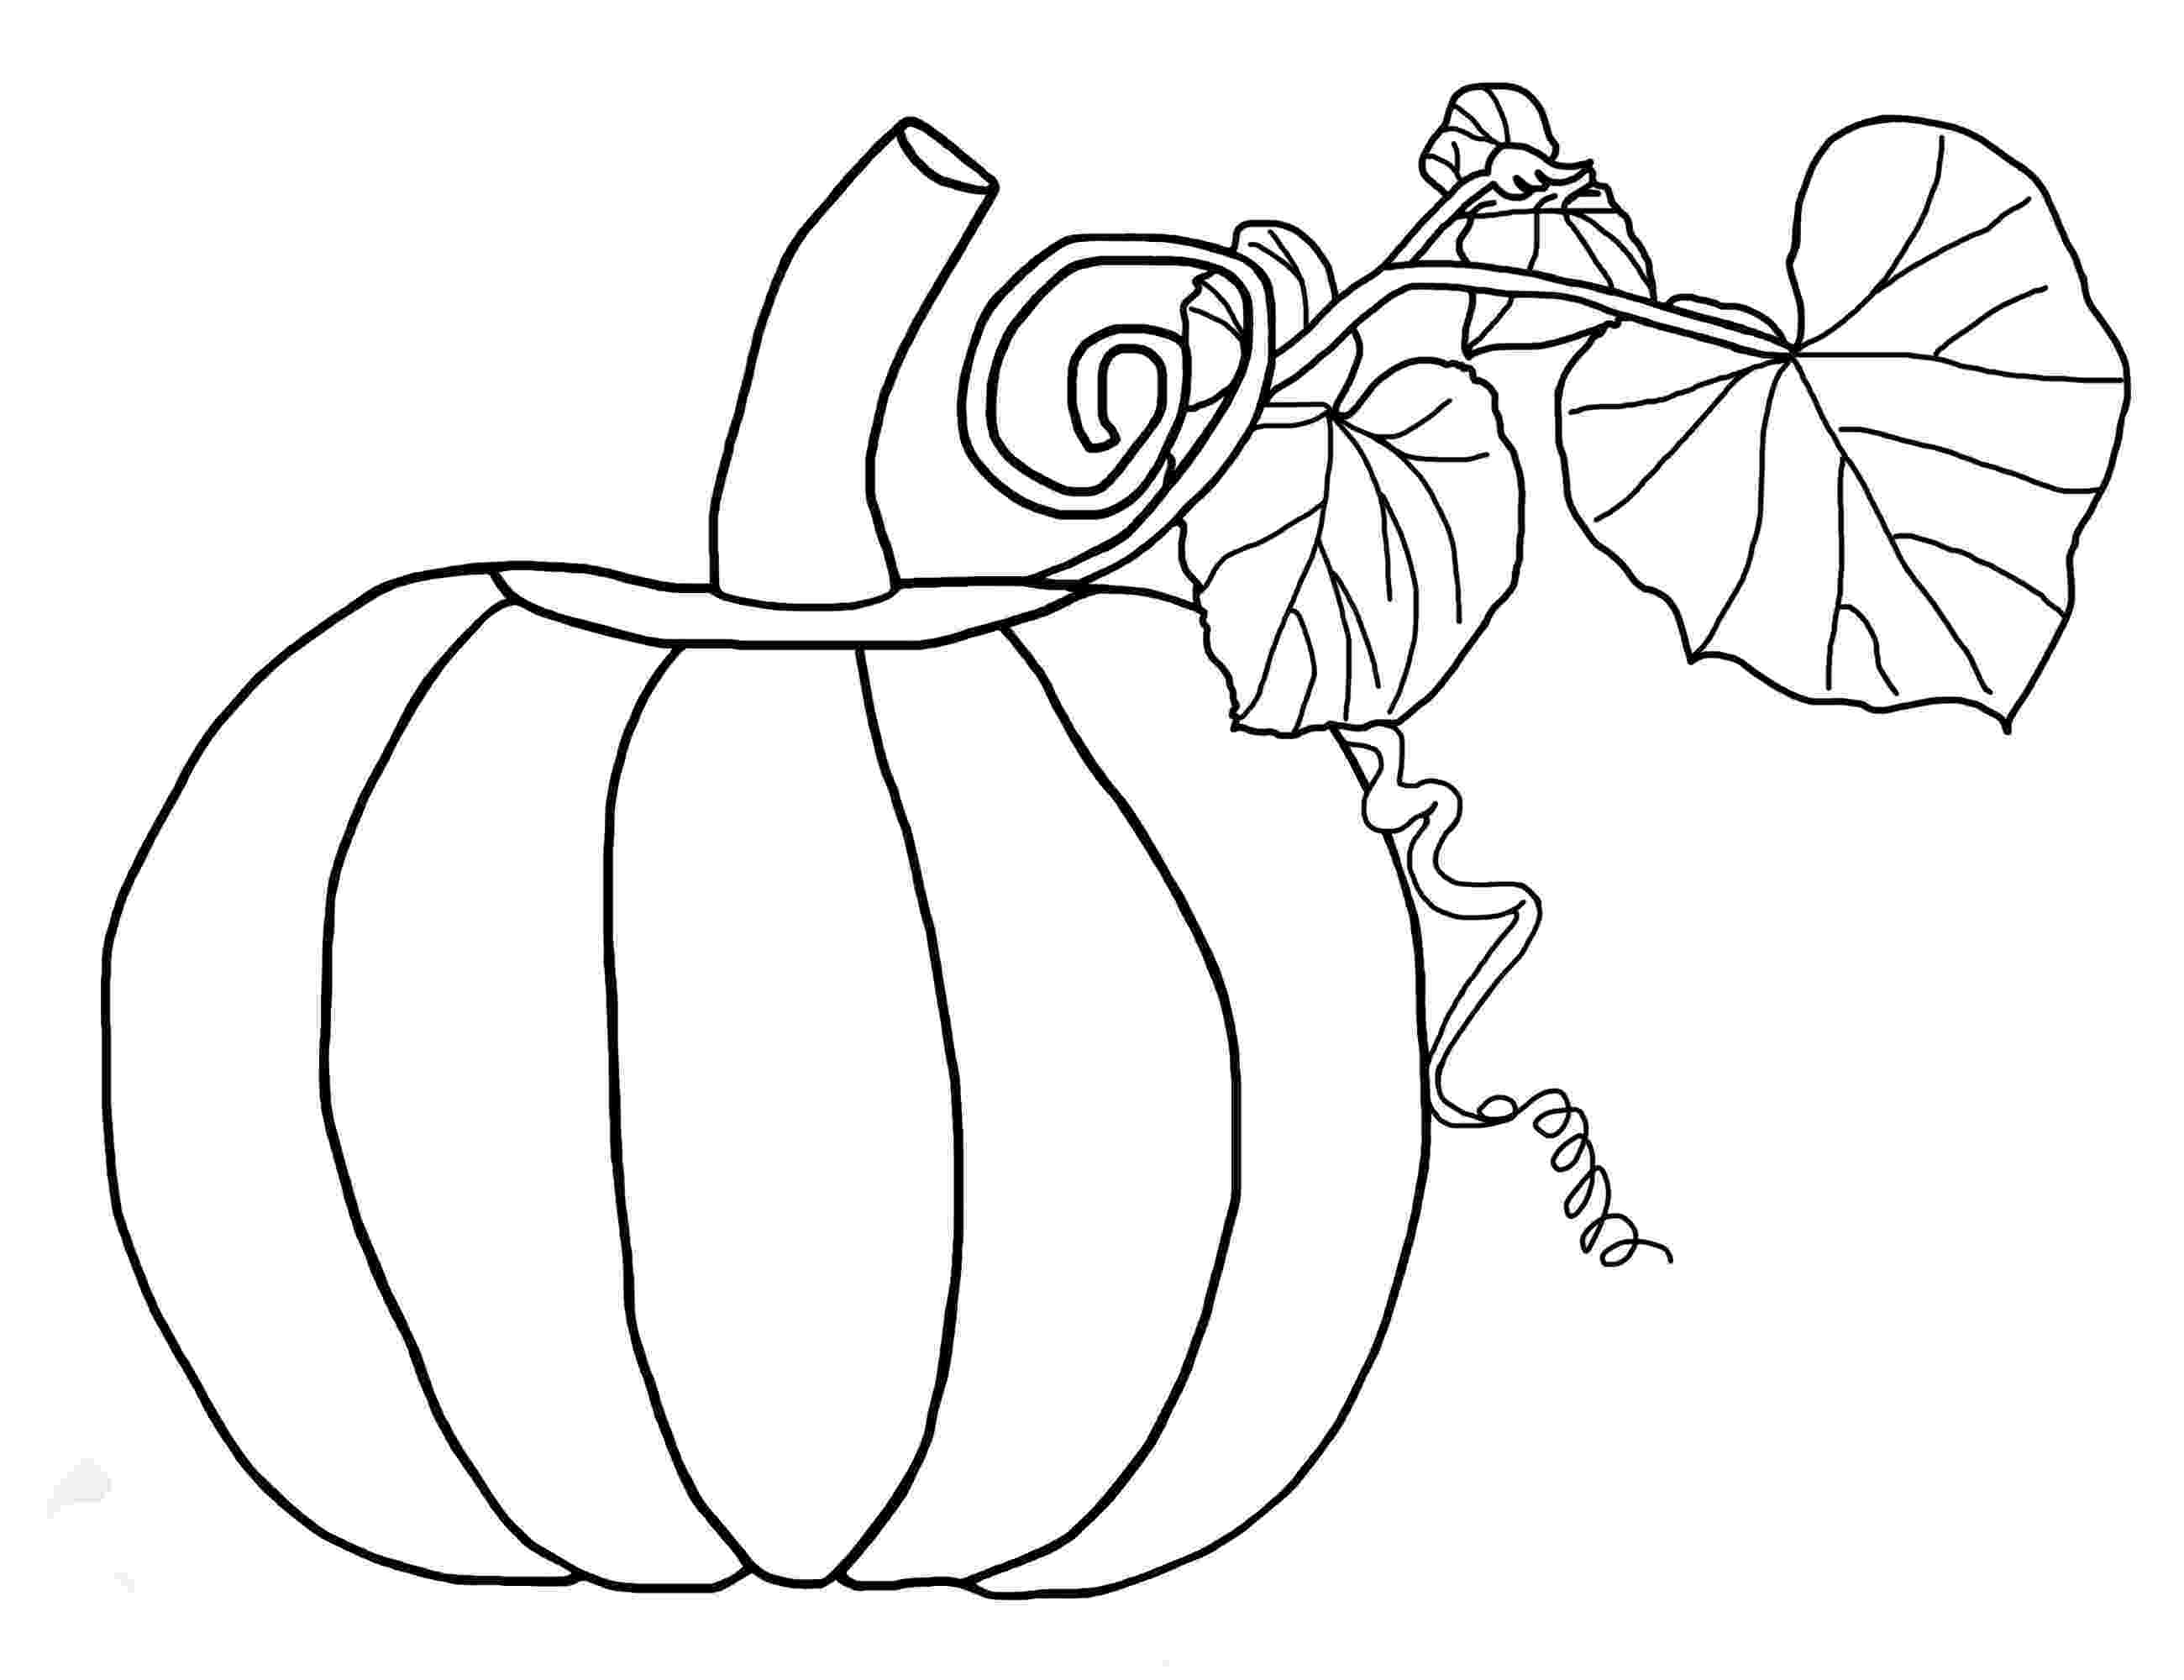 pumpkin pictures to colour free printable pumpkin coloring pages for kids pictures colour to pumpkin